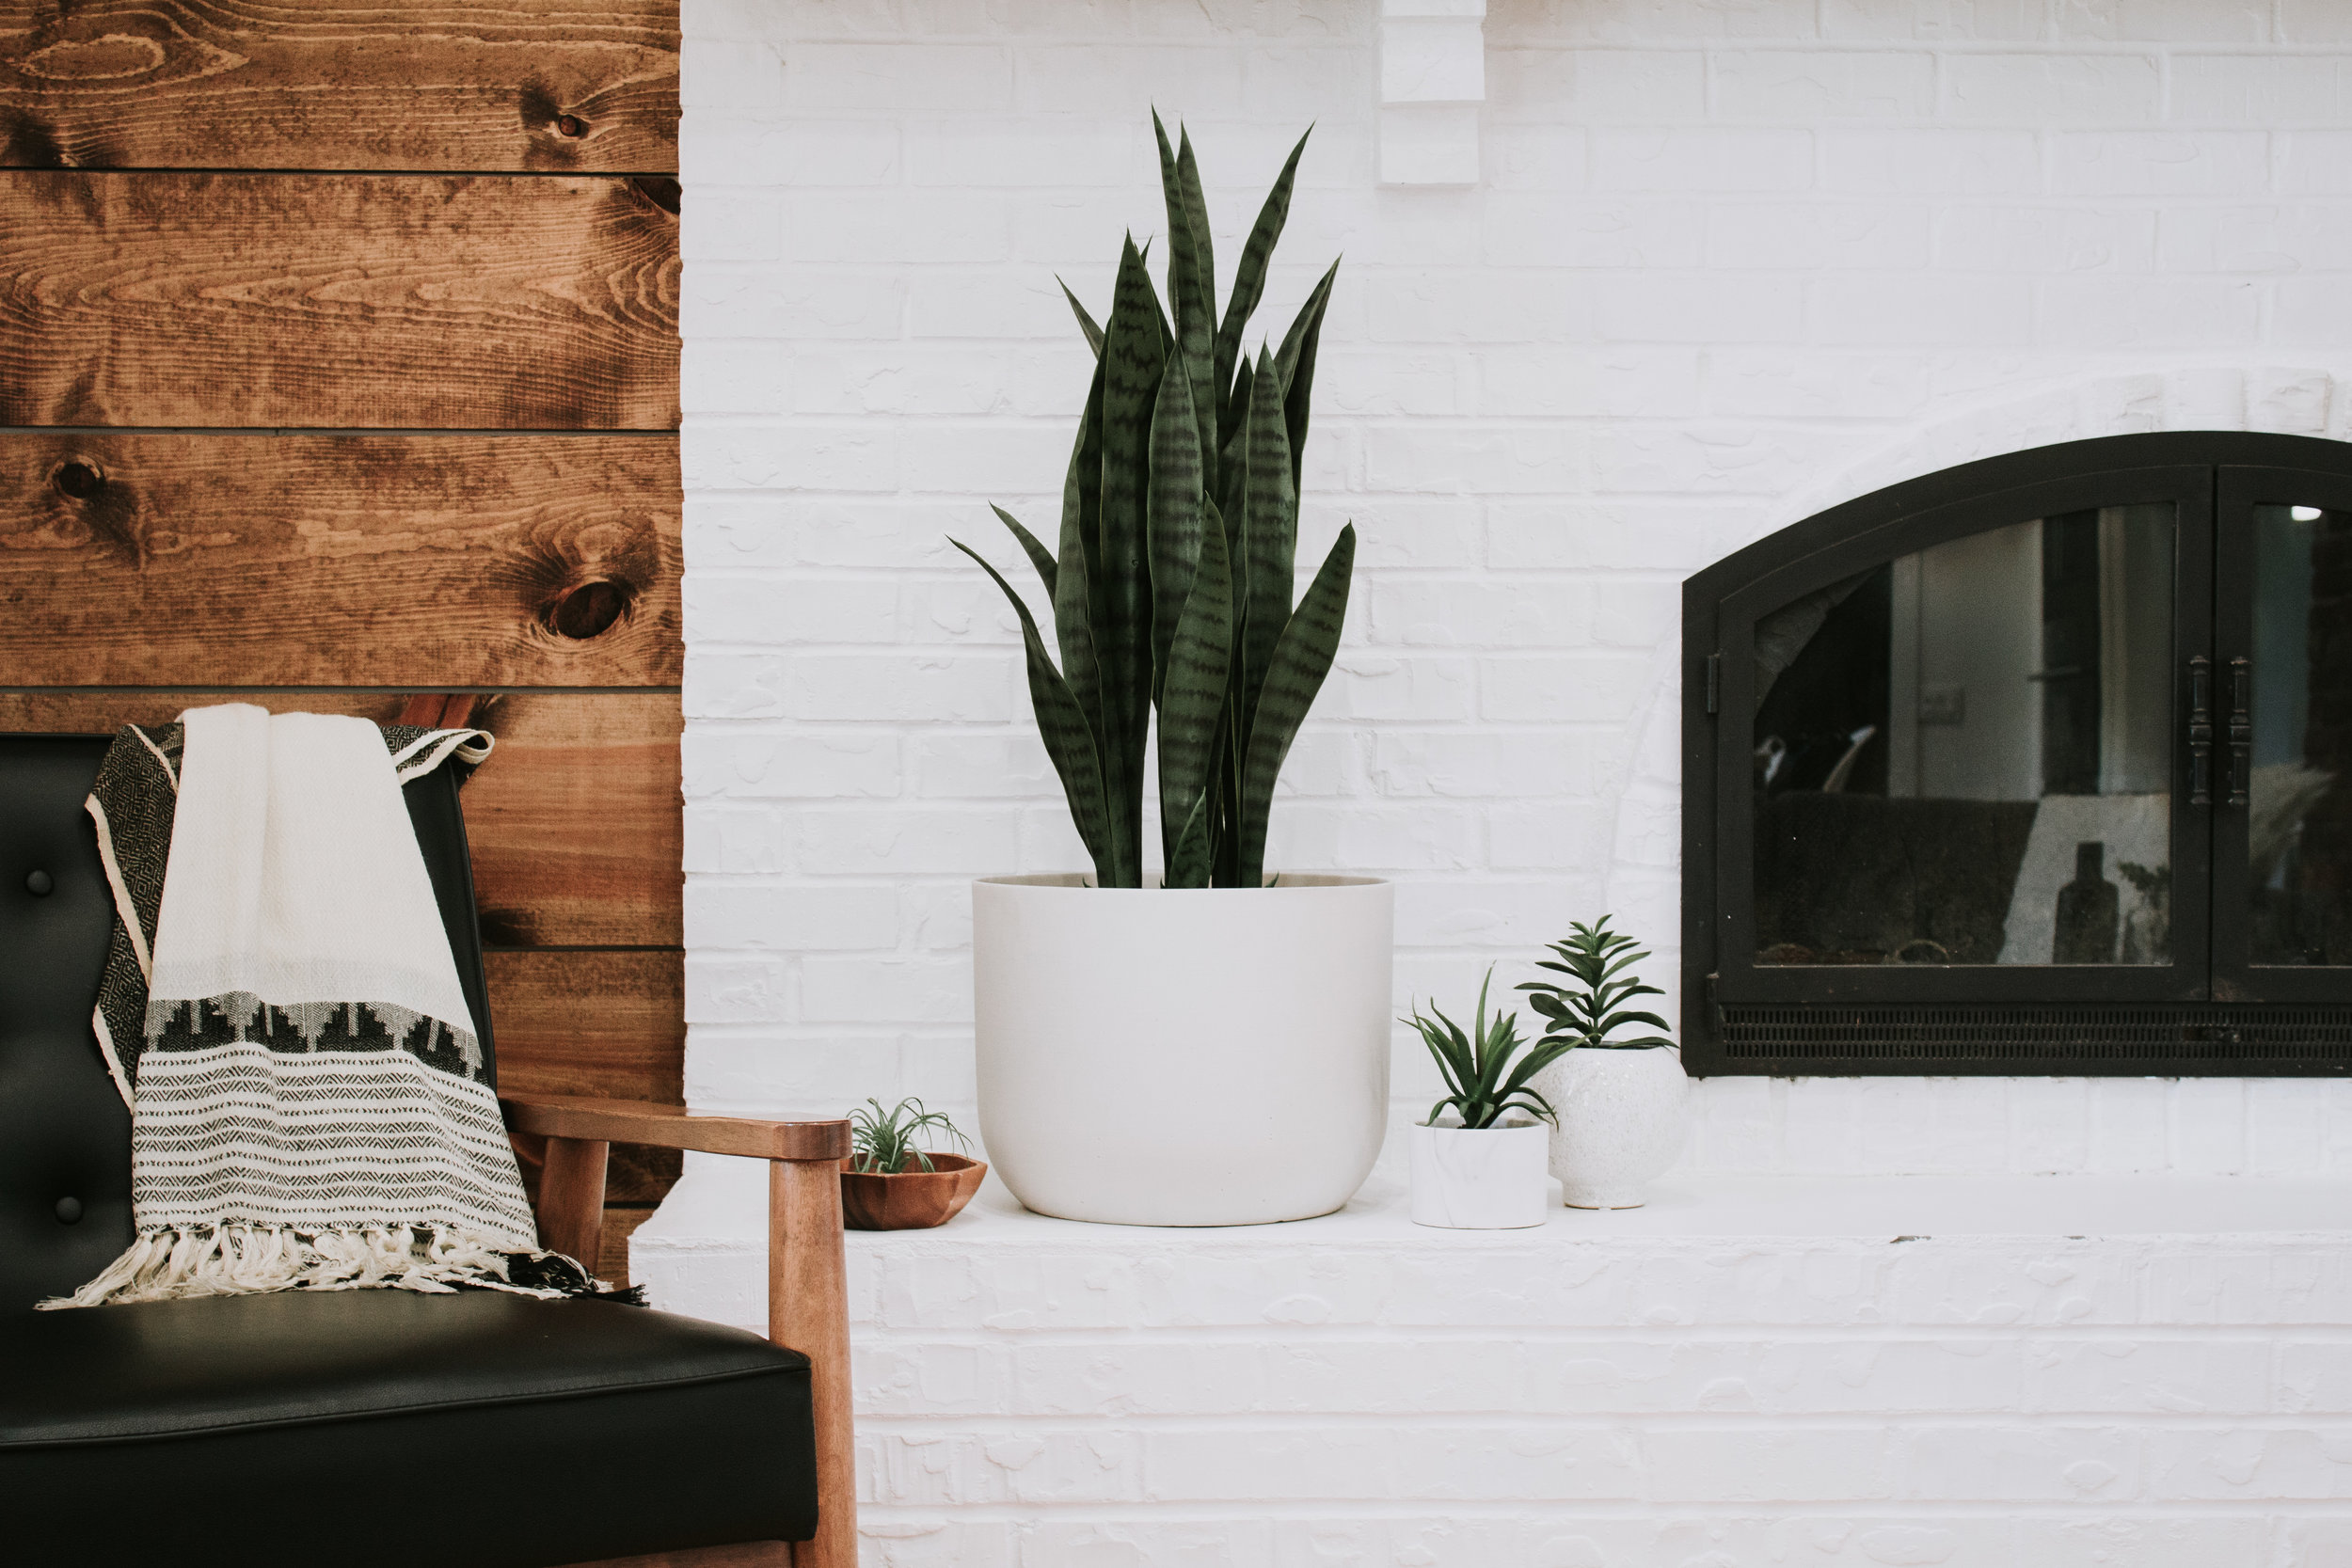 9 Faux Plants That Actually Look Real - Fiddle Leaf Fig, snake plant, birds of paradise palm tree, banana leaf tree, succulents, and faux stems. Fake indoor plants by Nadine Stay